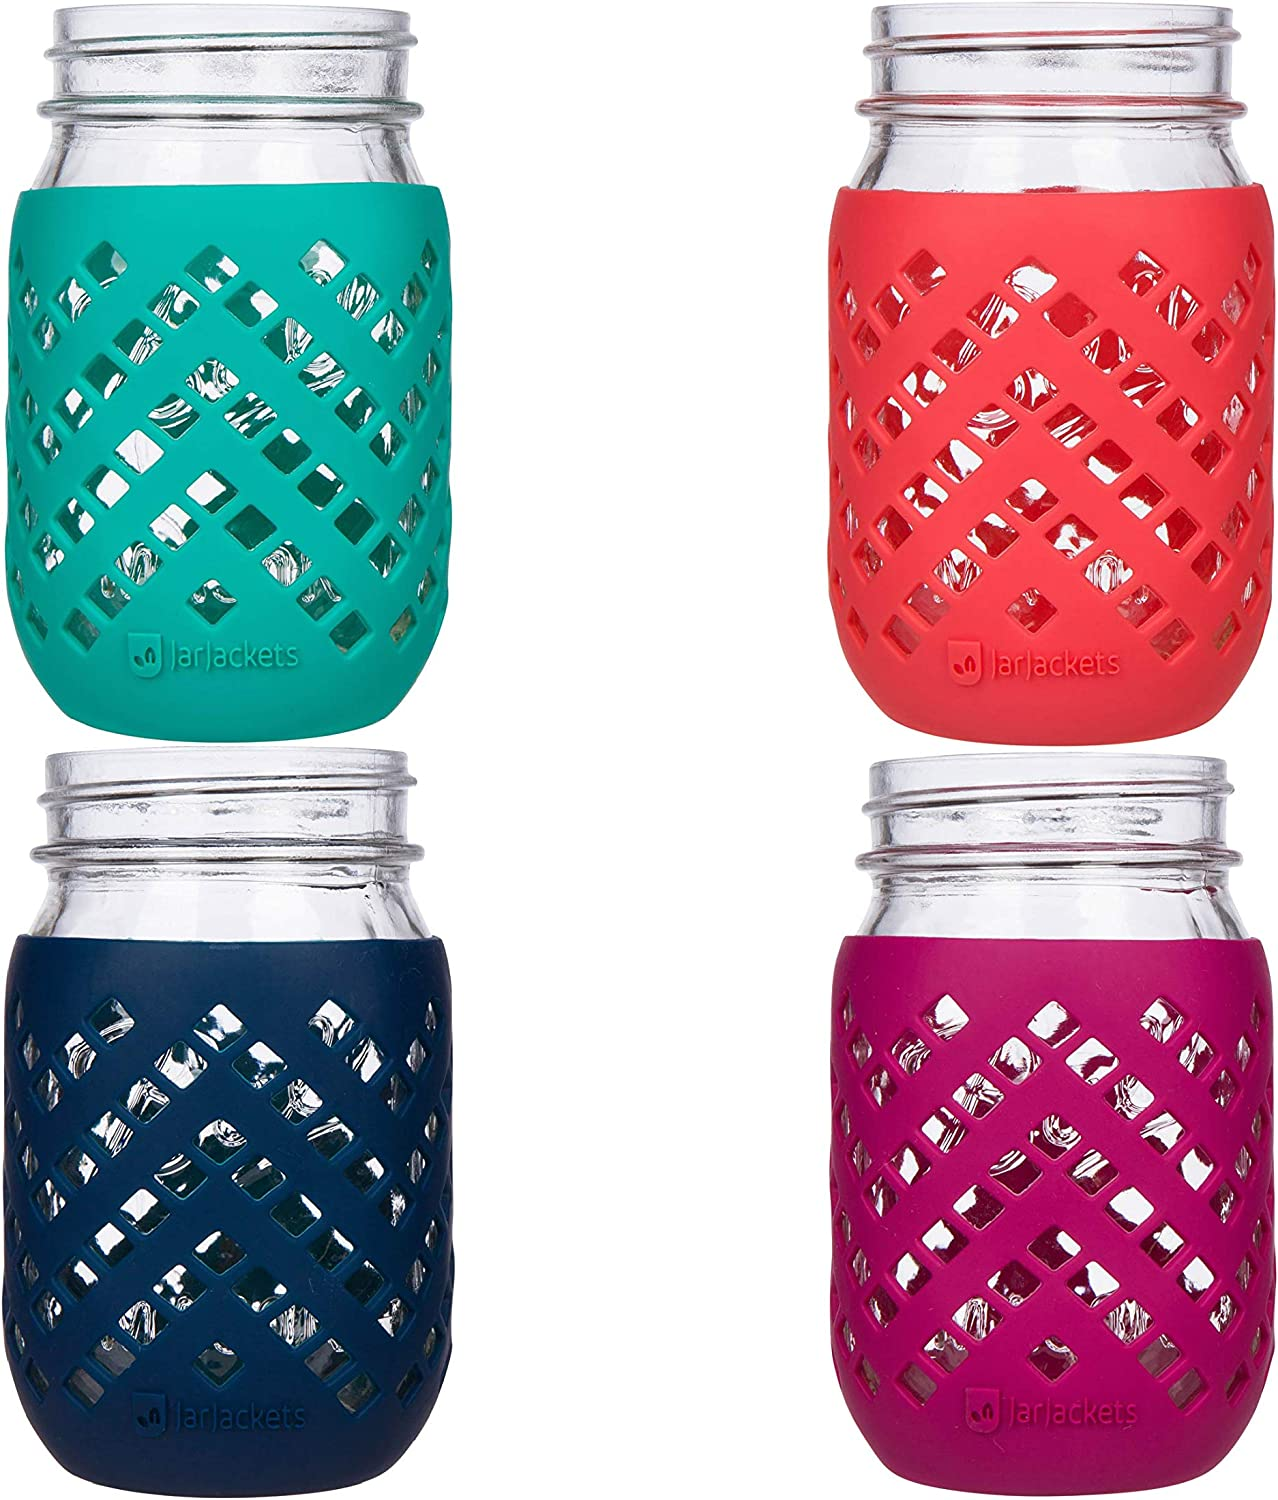 Package of 1 Lagoon JarJackets Silicone Mason Jar Protector Sleeve 1 pint Fits Ball Wide-Mouth Jars Kerr 16oz